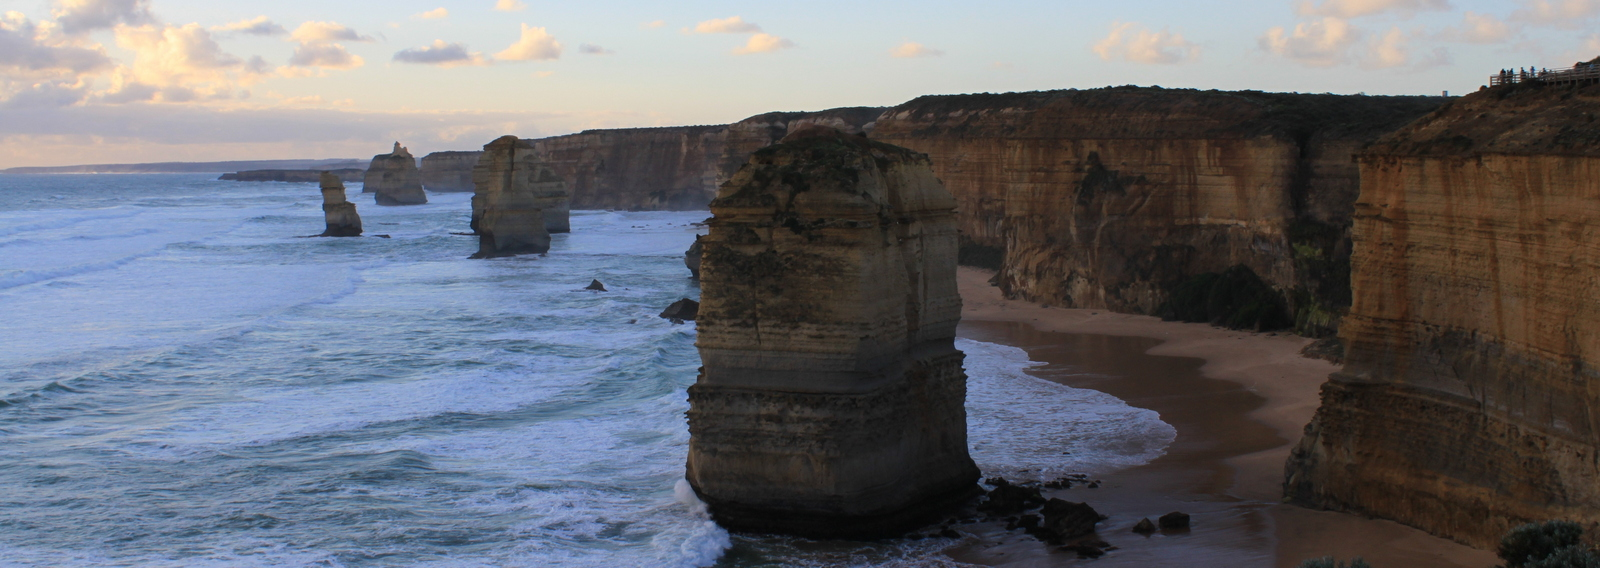 Sunset at 12 Apostles, Great Ocean Road, Australia